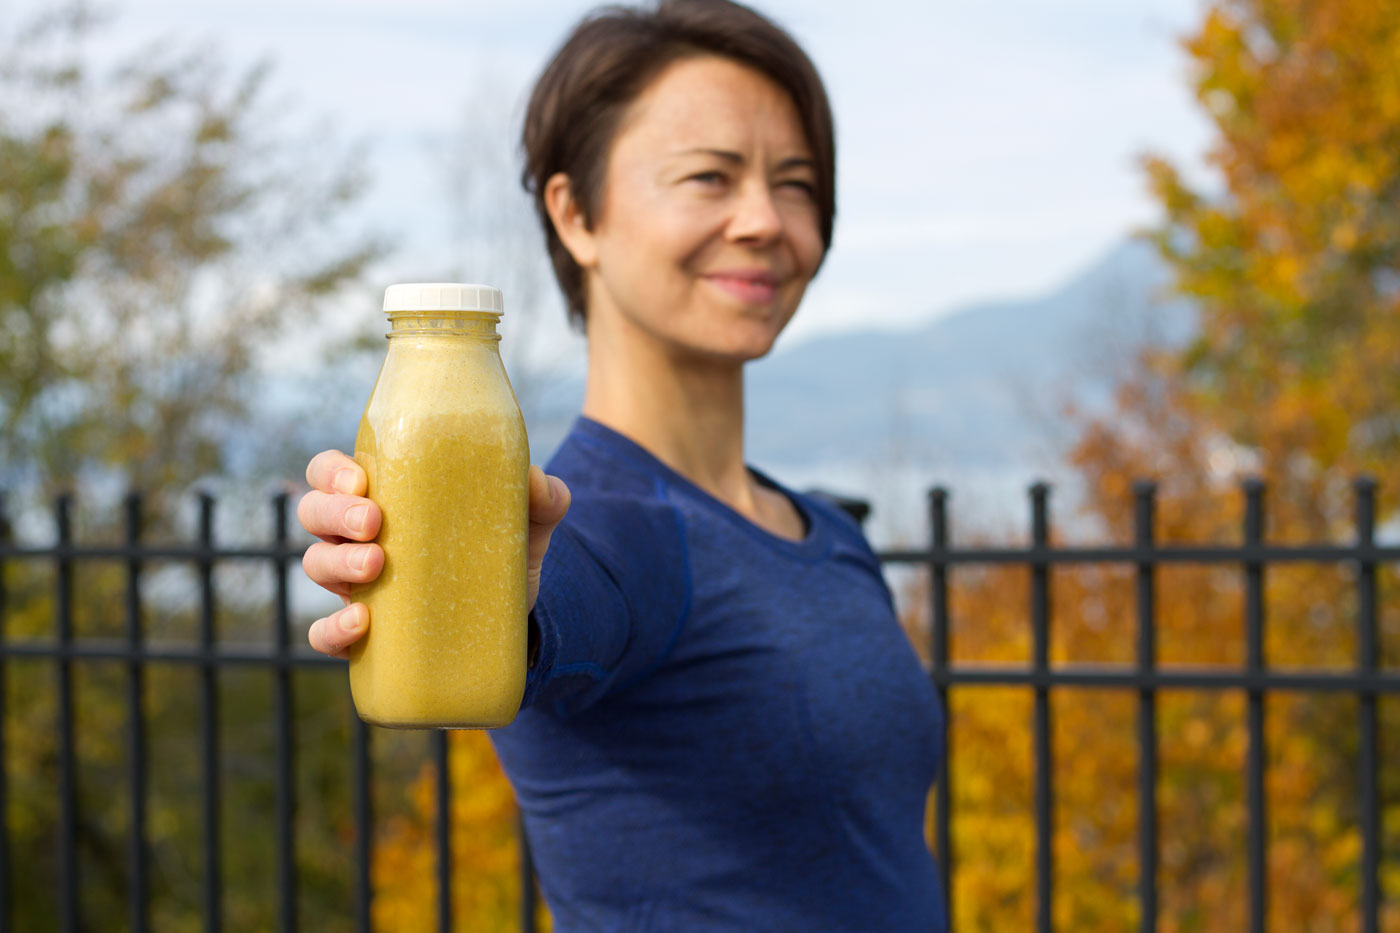 This is Zuzana enjoying her pumpkin muscle mylk